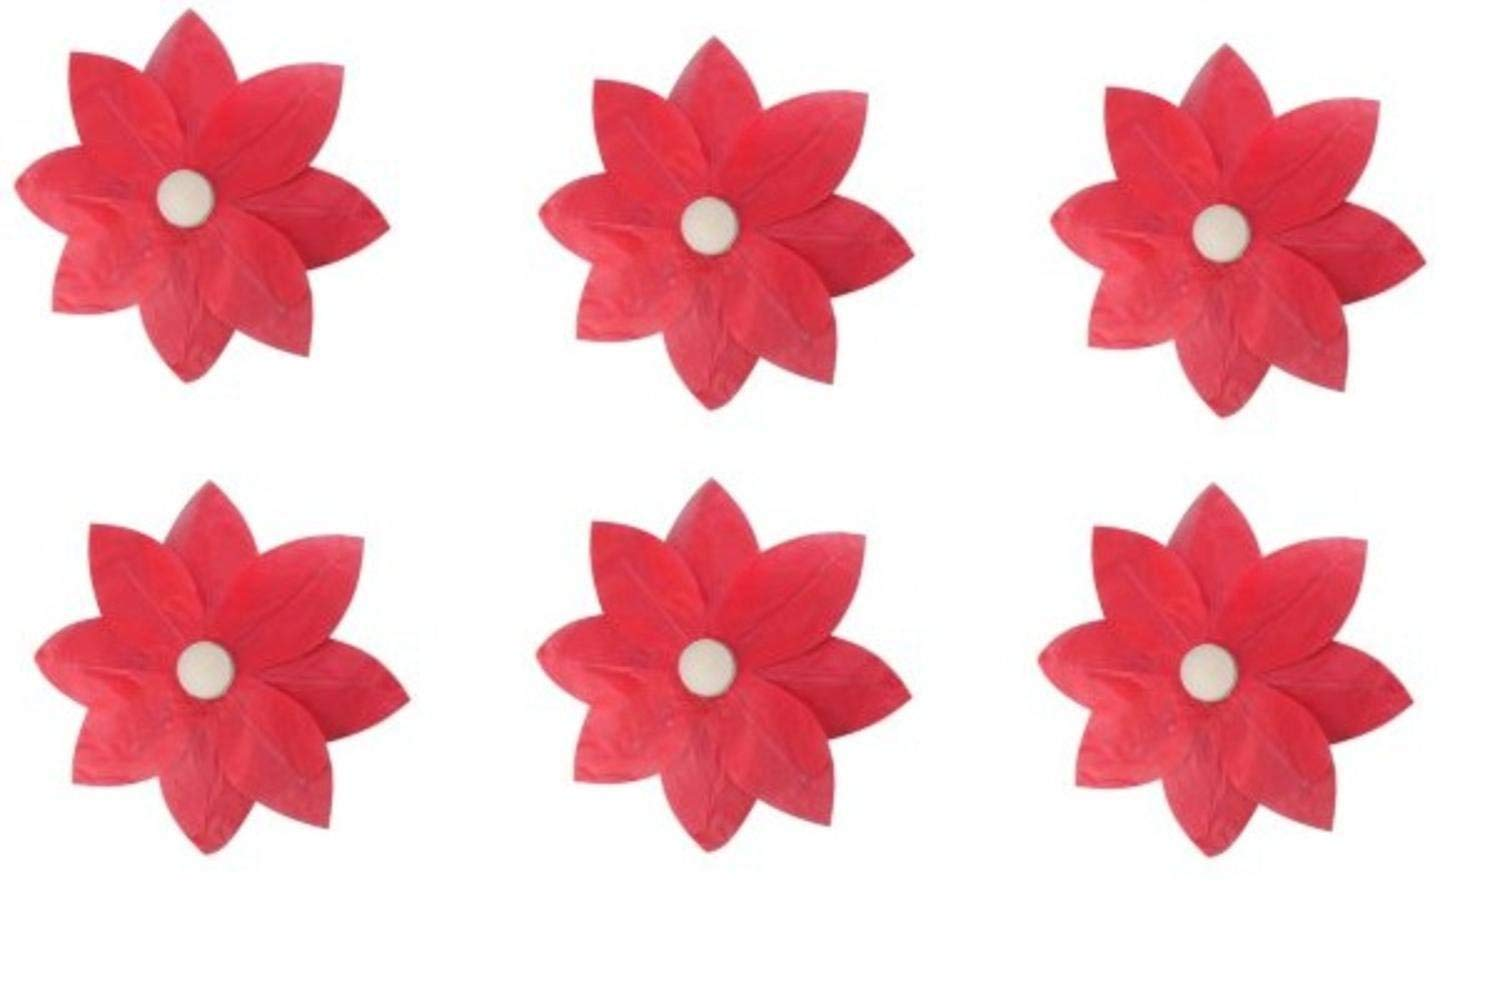 Pack of 6 Red Floating Lotus Paper Flower Outdoor Patio Decor Lanterns